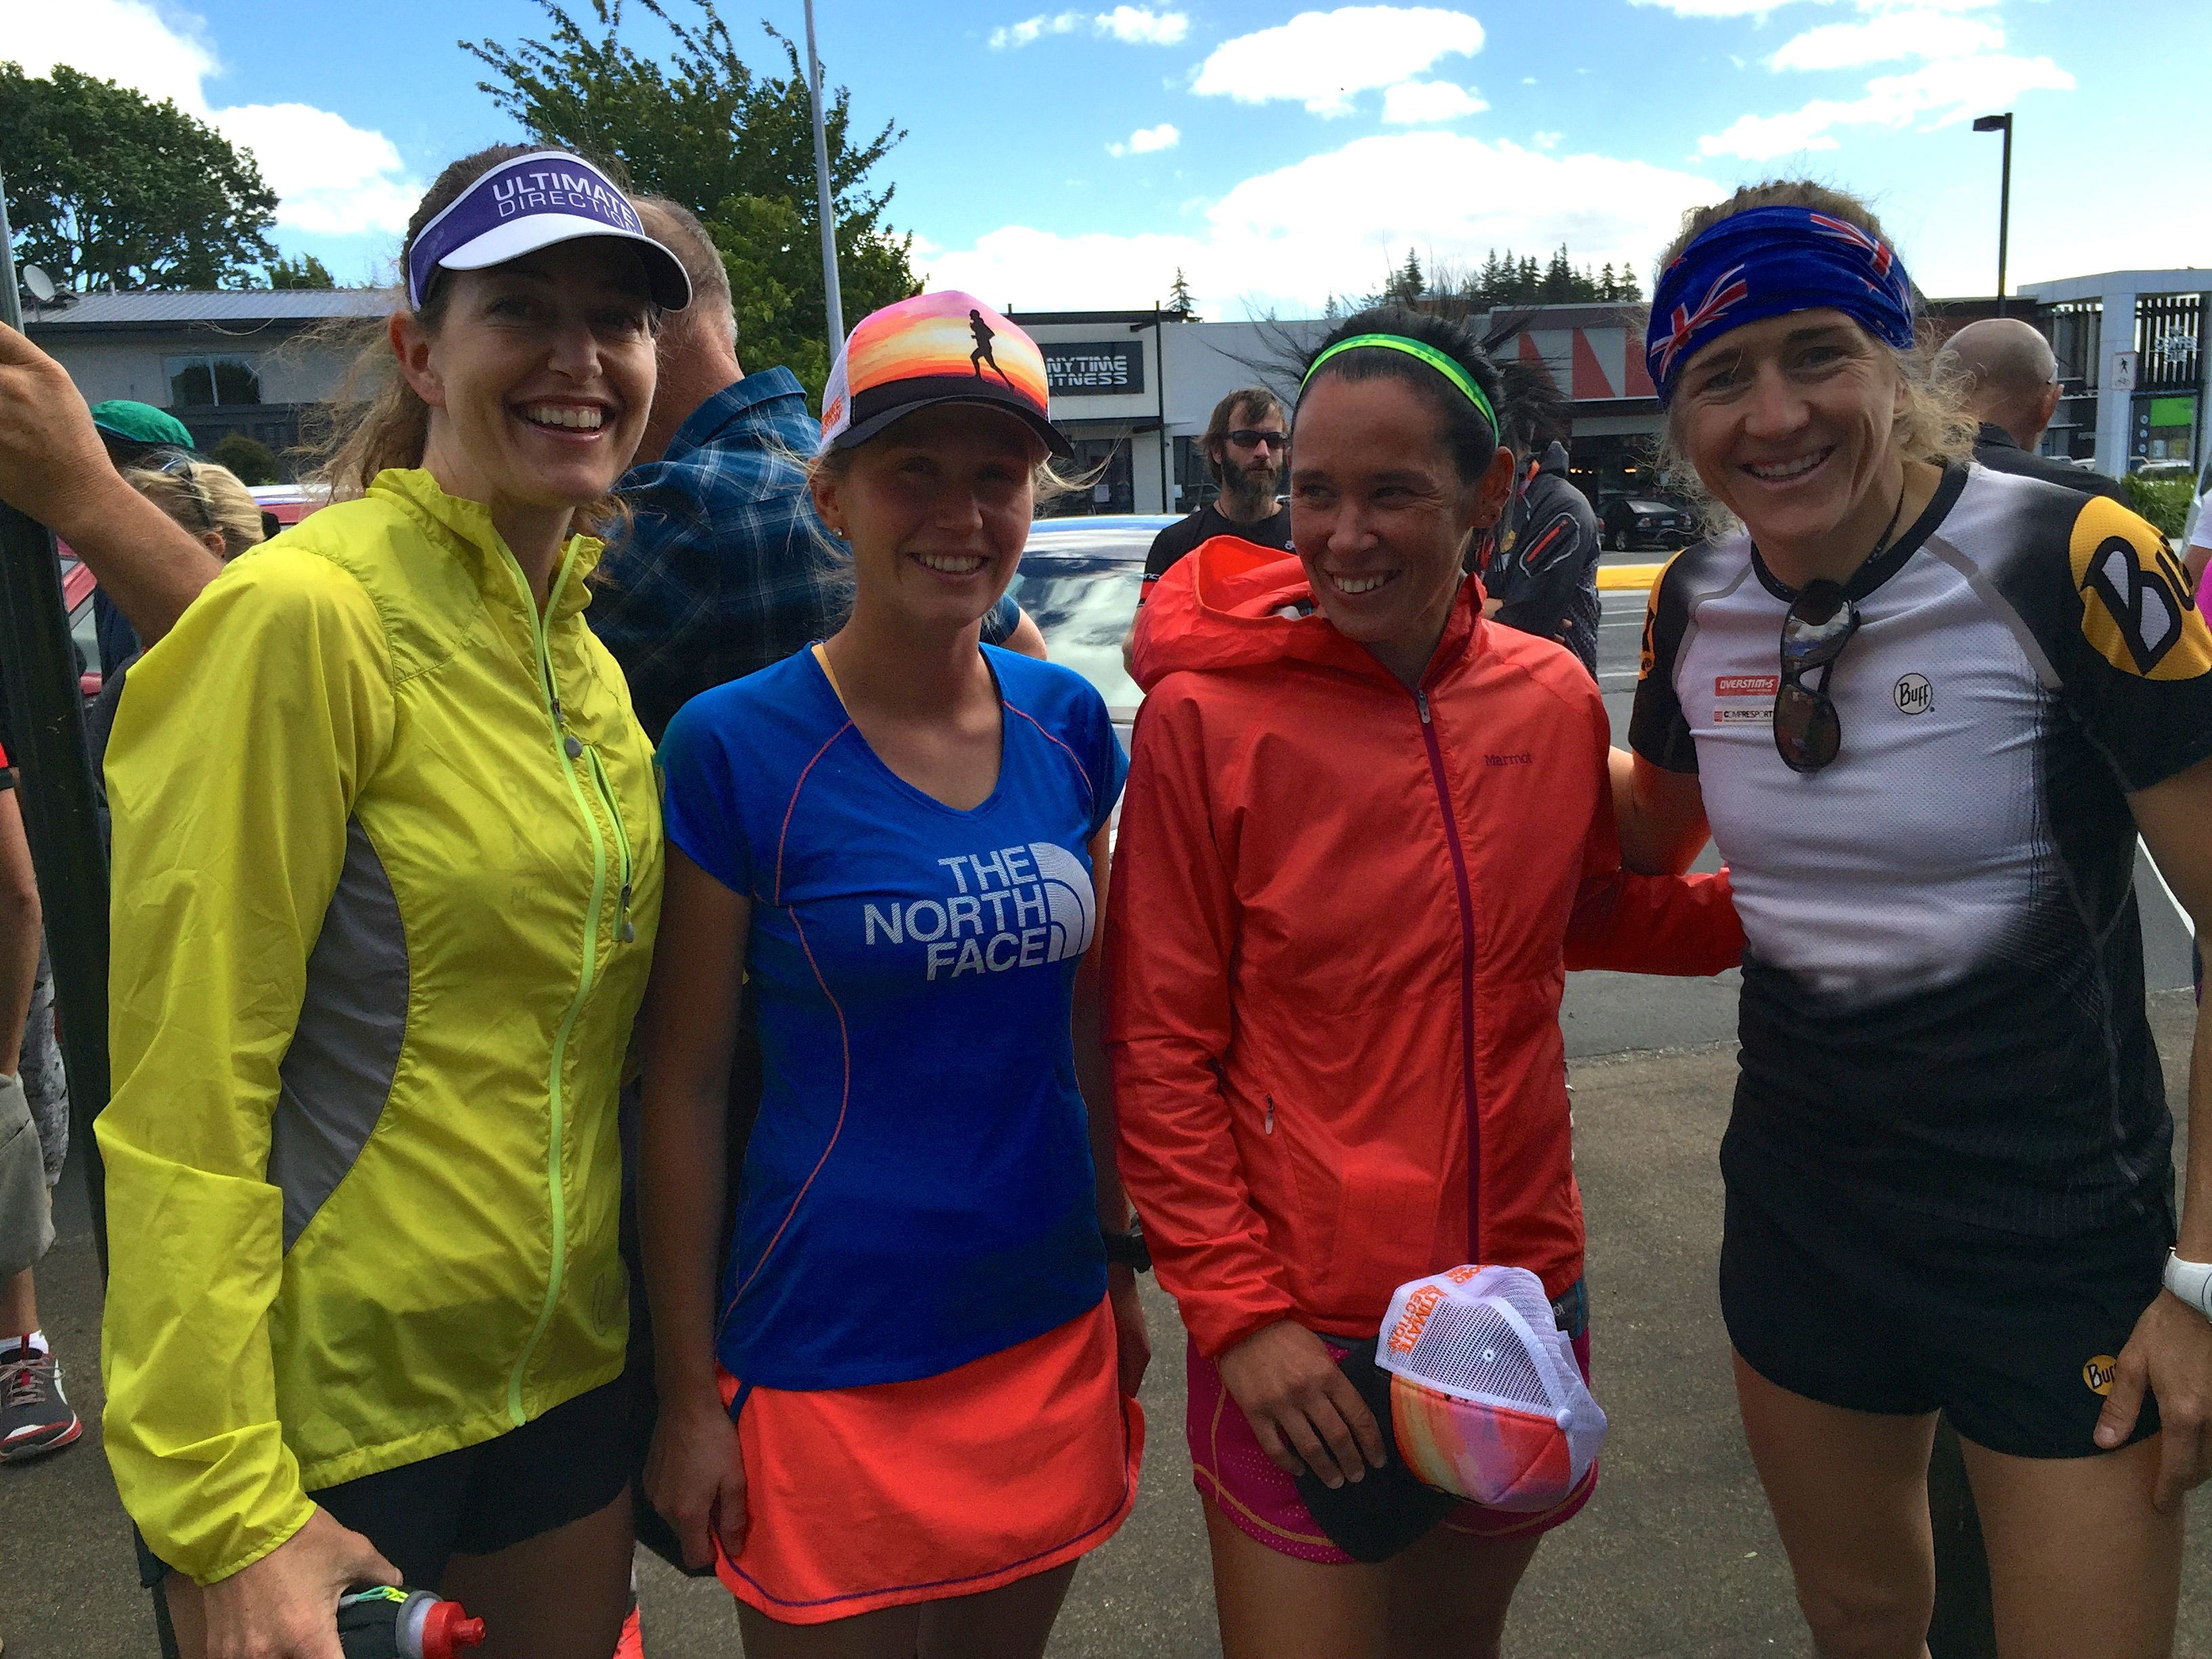 Getting to know some incredible runners: (L-R) Whitney Dagg and Jo Johansen of New Zealand, and Núria Picas of Spain.